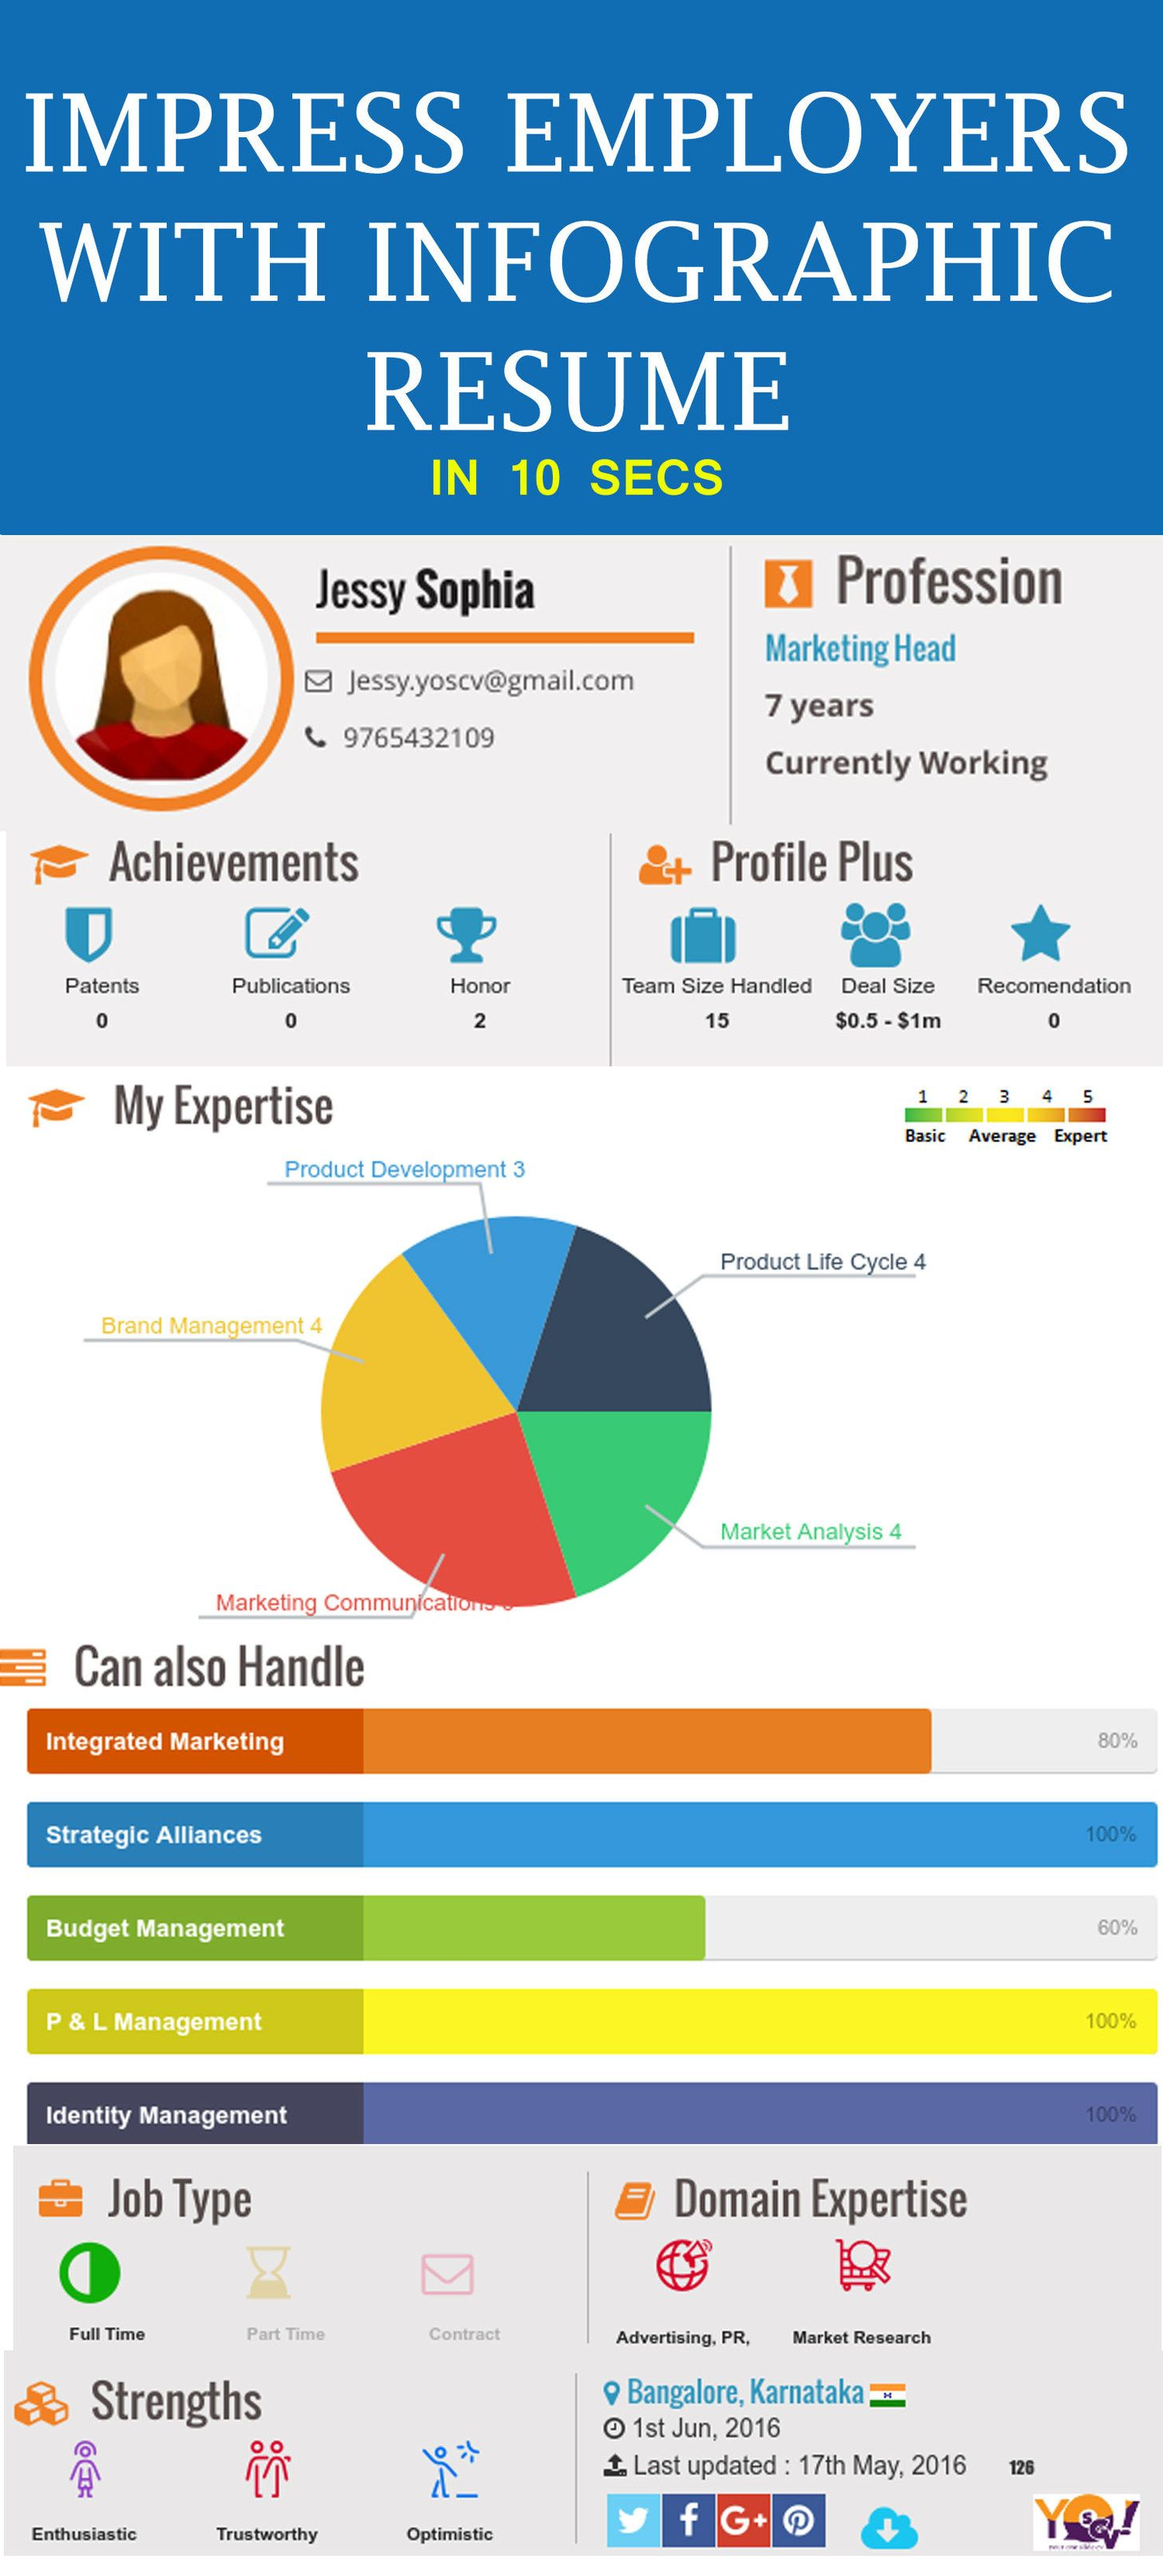 Web Based Resume Builder The Most Awesome Images On The Internet Internet